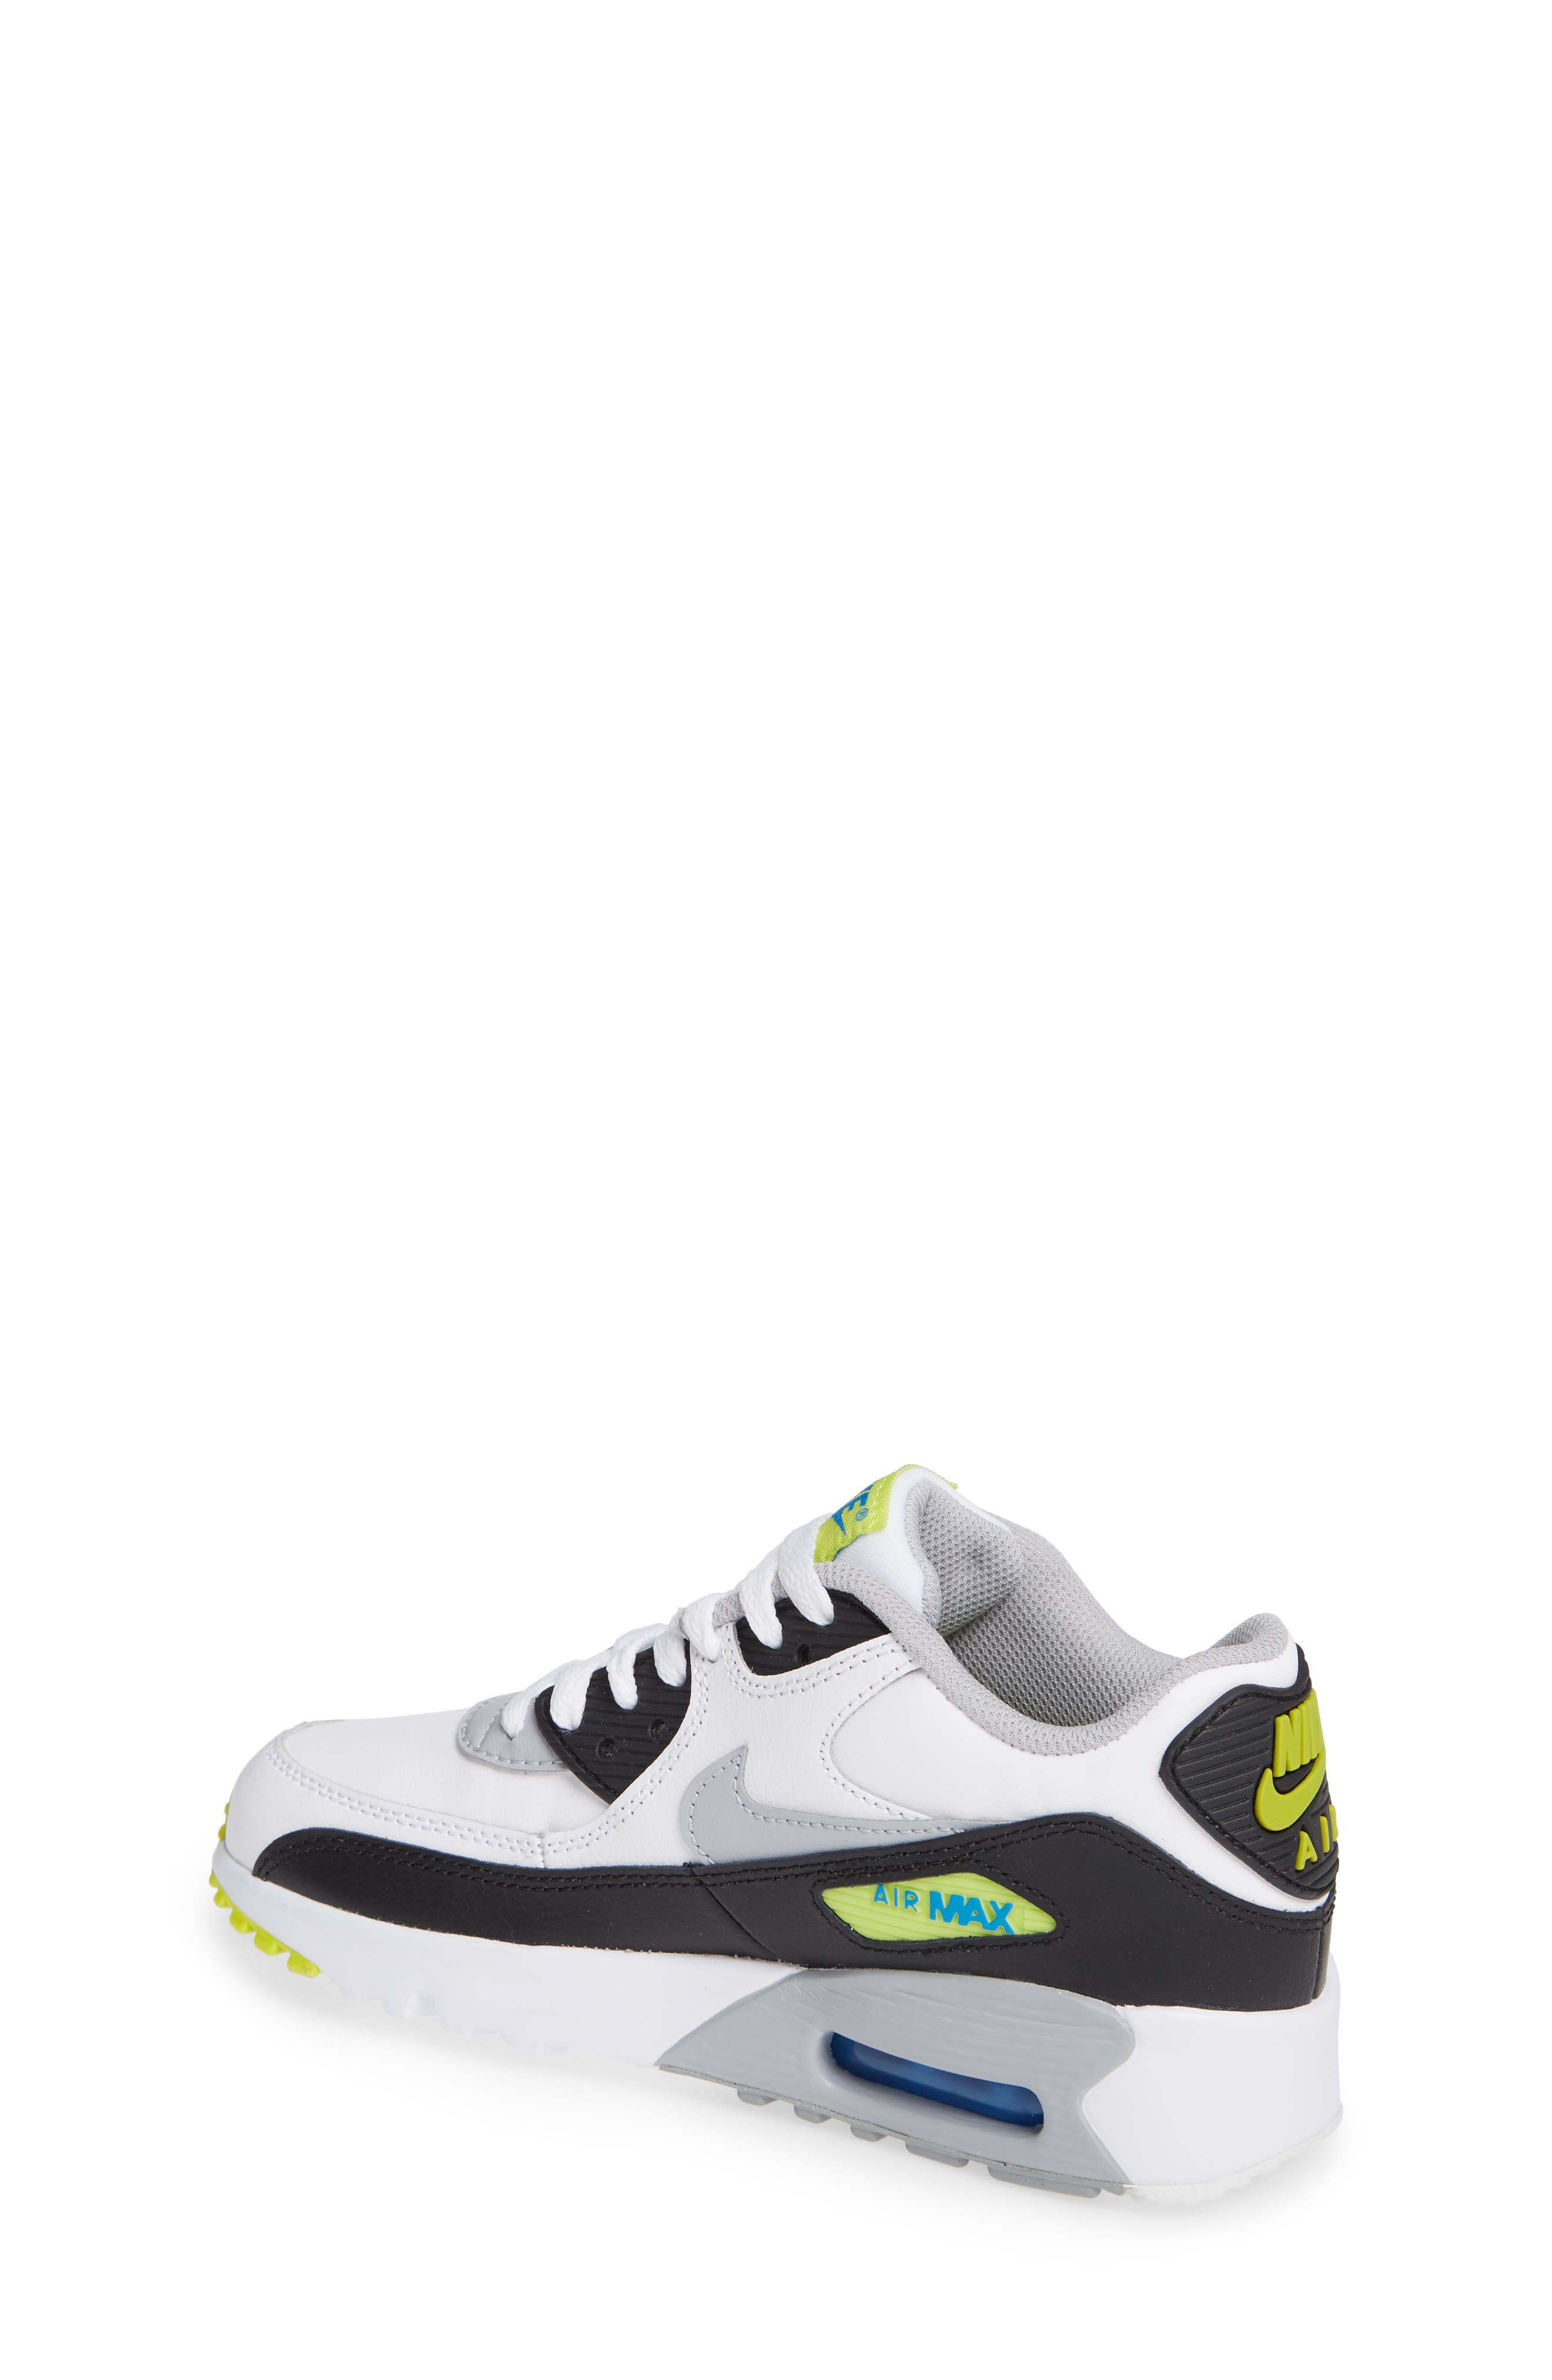 Air Max 90 Sneaker,                             Alternate thumbnail 2, color,                             WHITE/ WOLF GREY/ BLUE